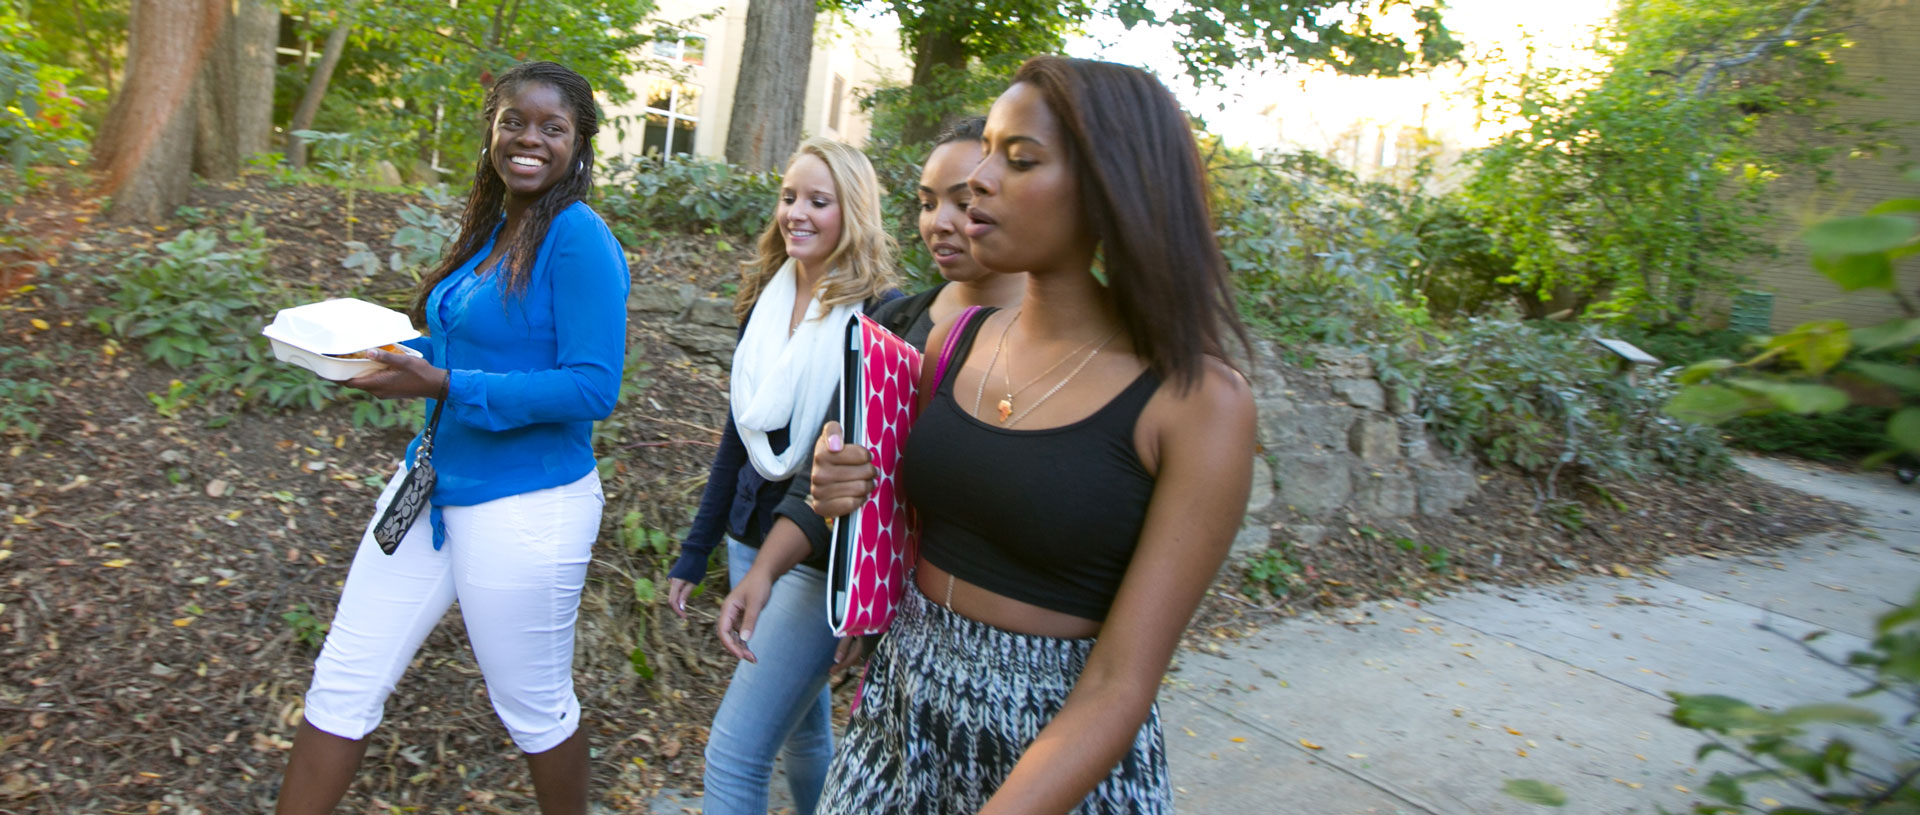 Undergrad female students walking outdoors.